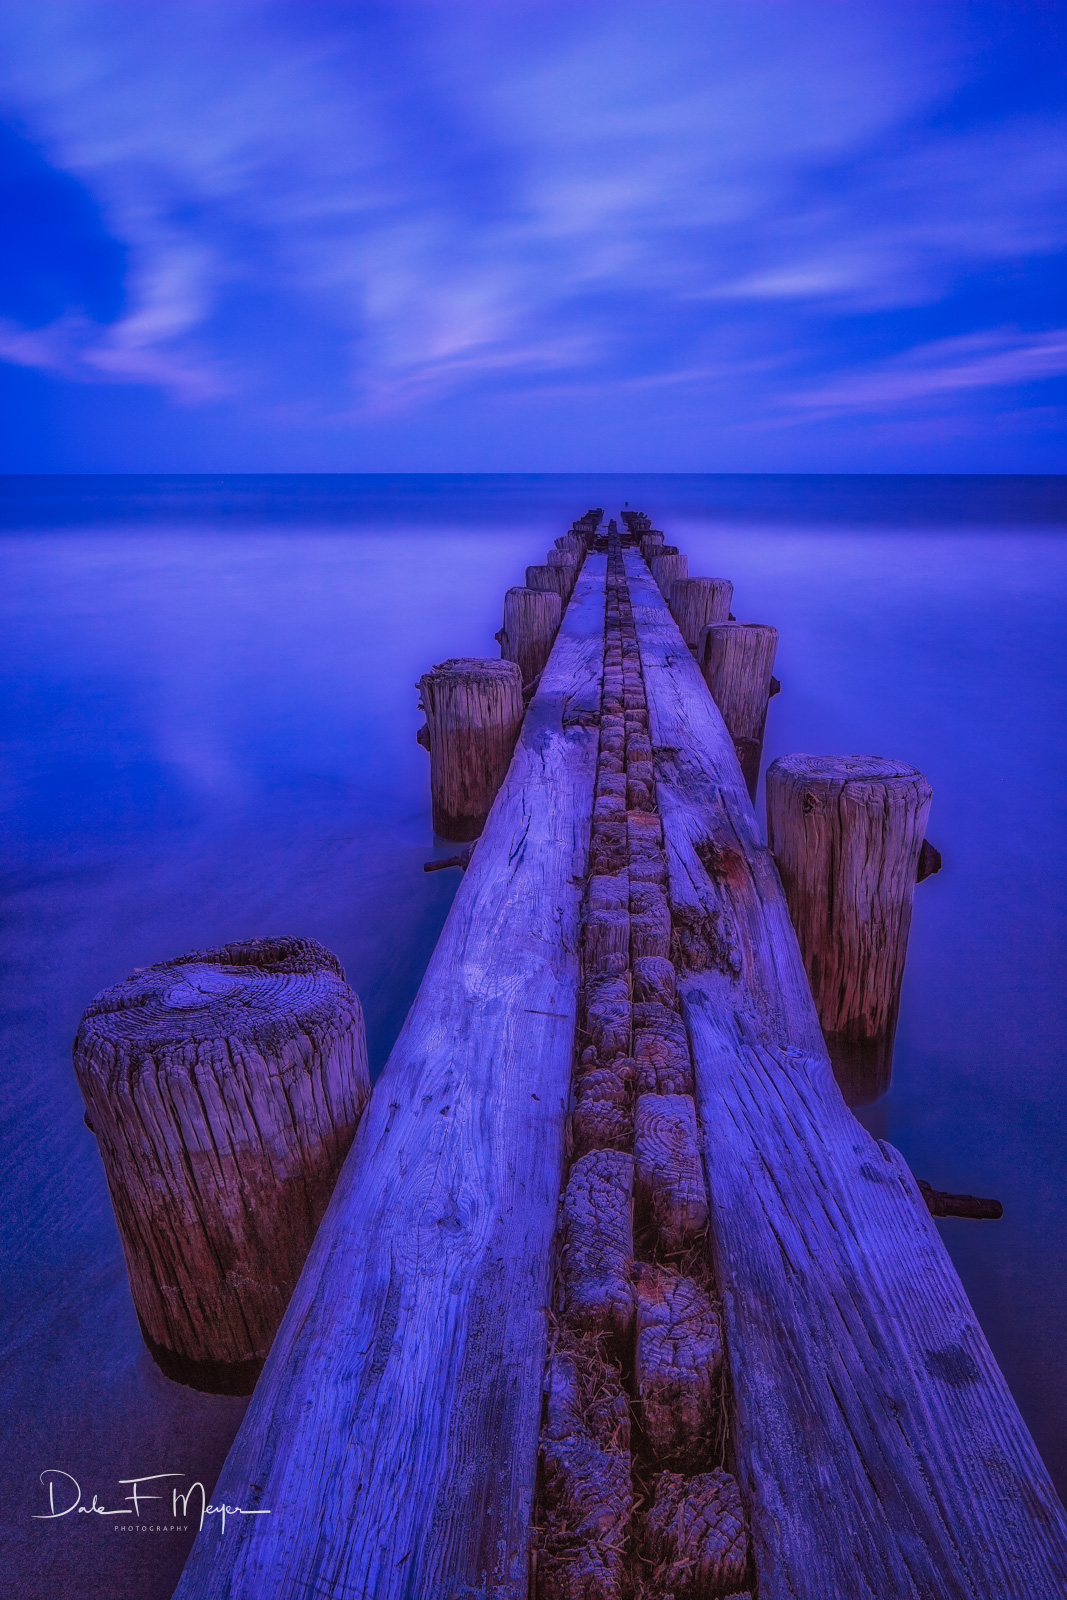 Ocean Jetty shot in the blue hour with a setting sun from behind illuminating the warm colors in the old worn wood. This was...